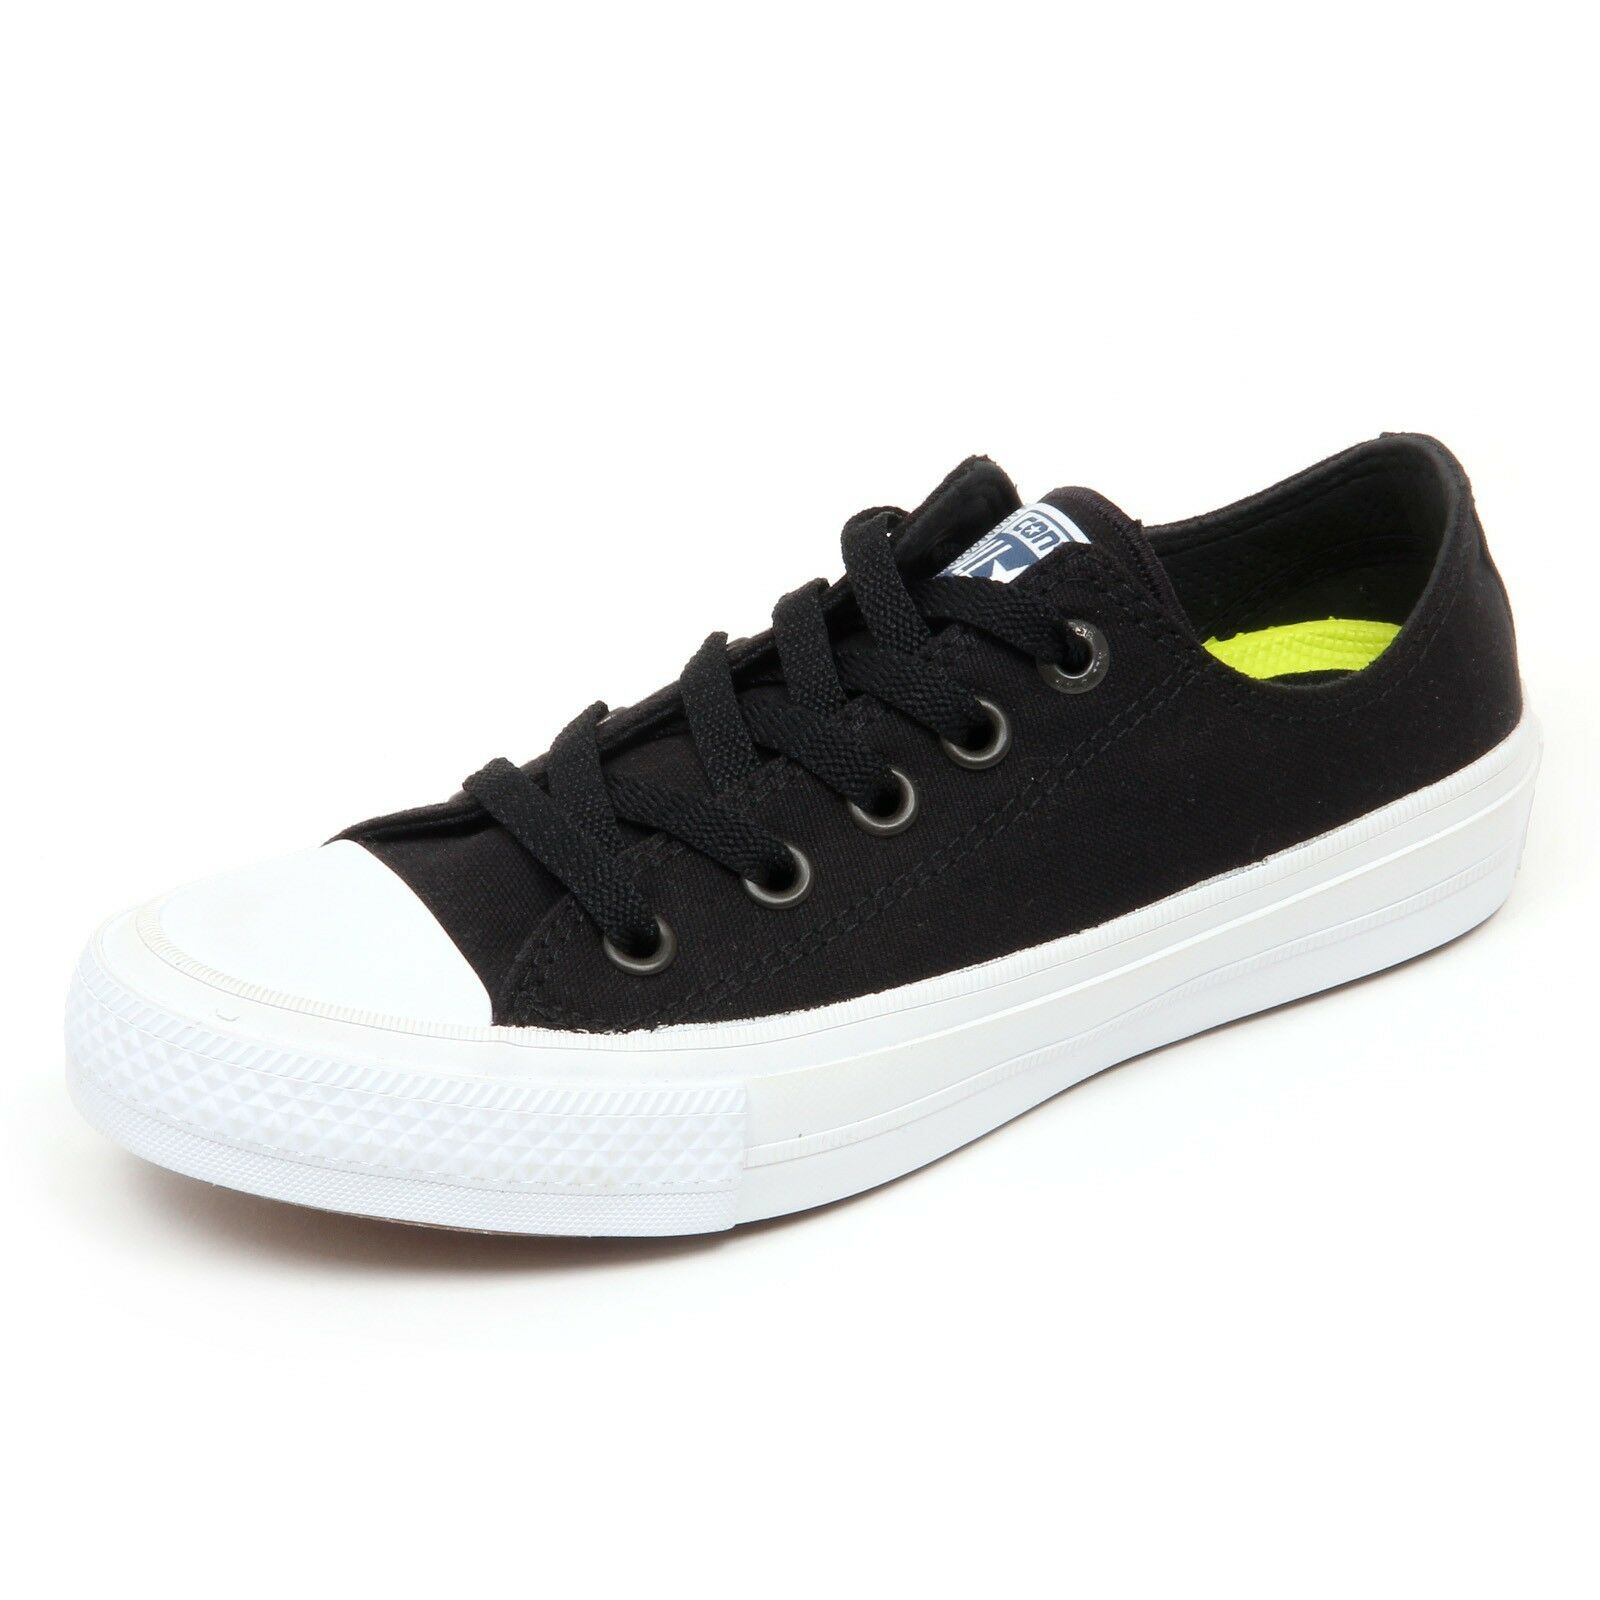 1bc0a4aee5e343 D4212 sneaker donna CONVERSE ALL STAR CHUCK TAYLOR II nero shoe woman for  sale online